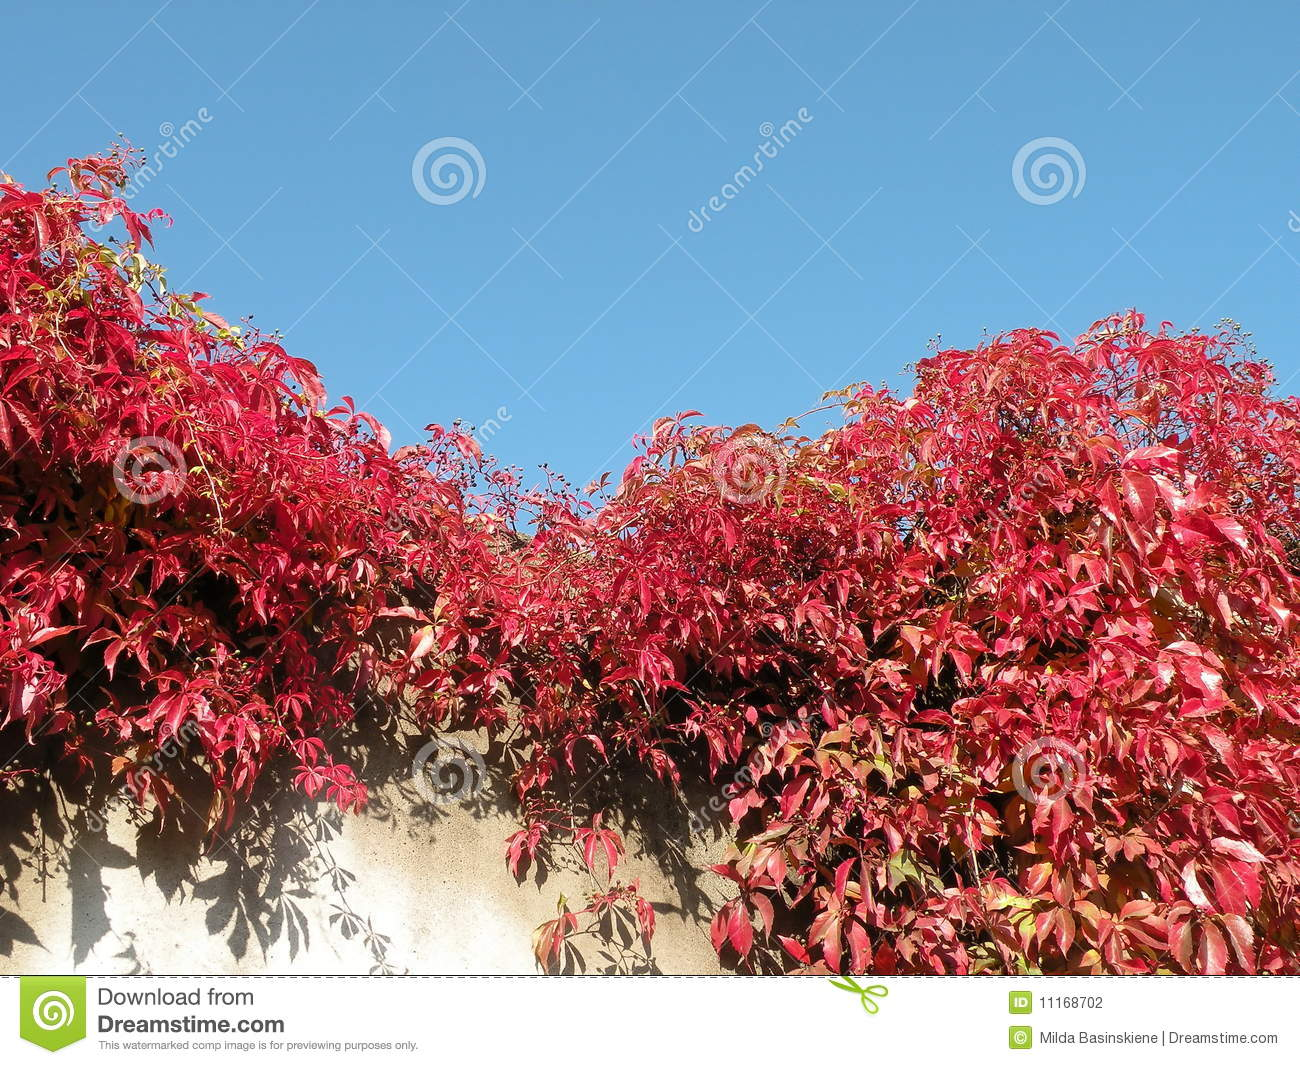 Plante grimpante rouge photographie stock image 11168702 for Plante rouge